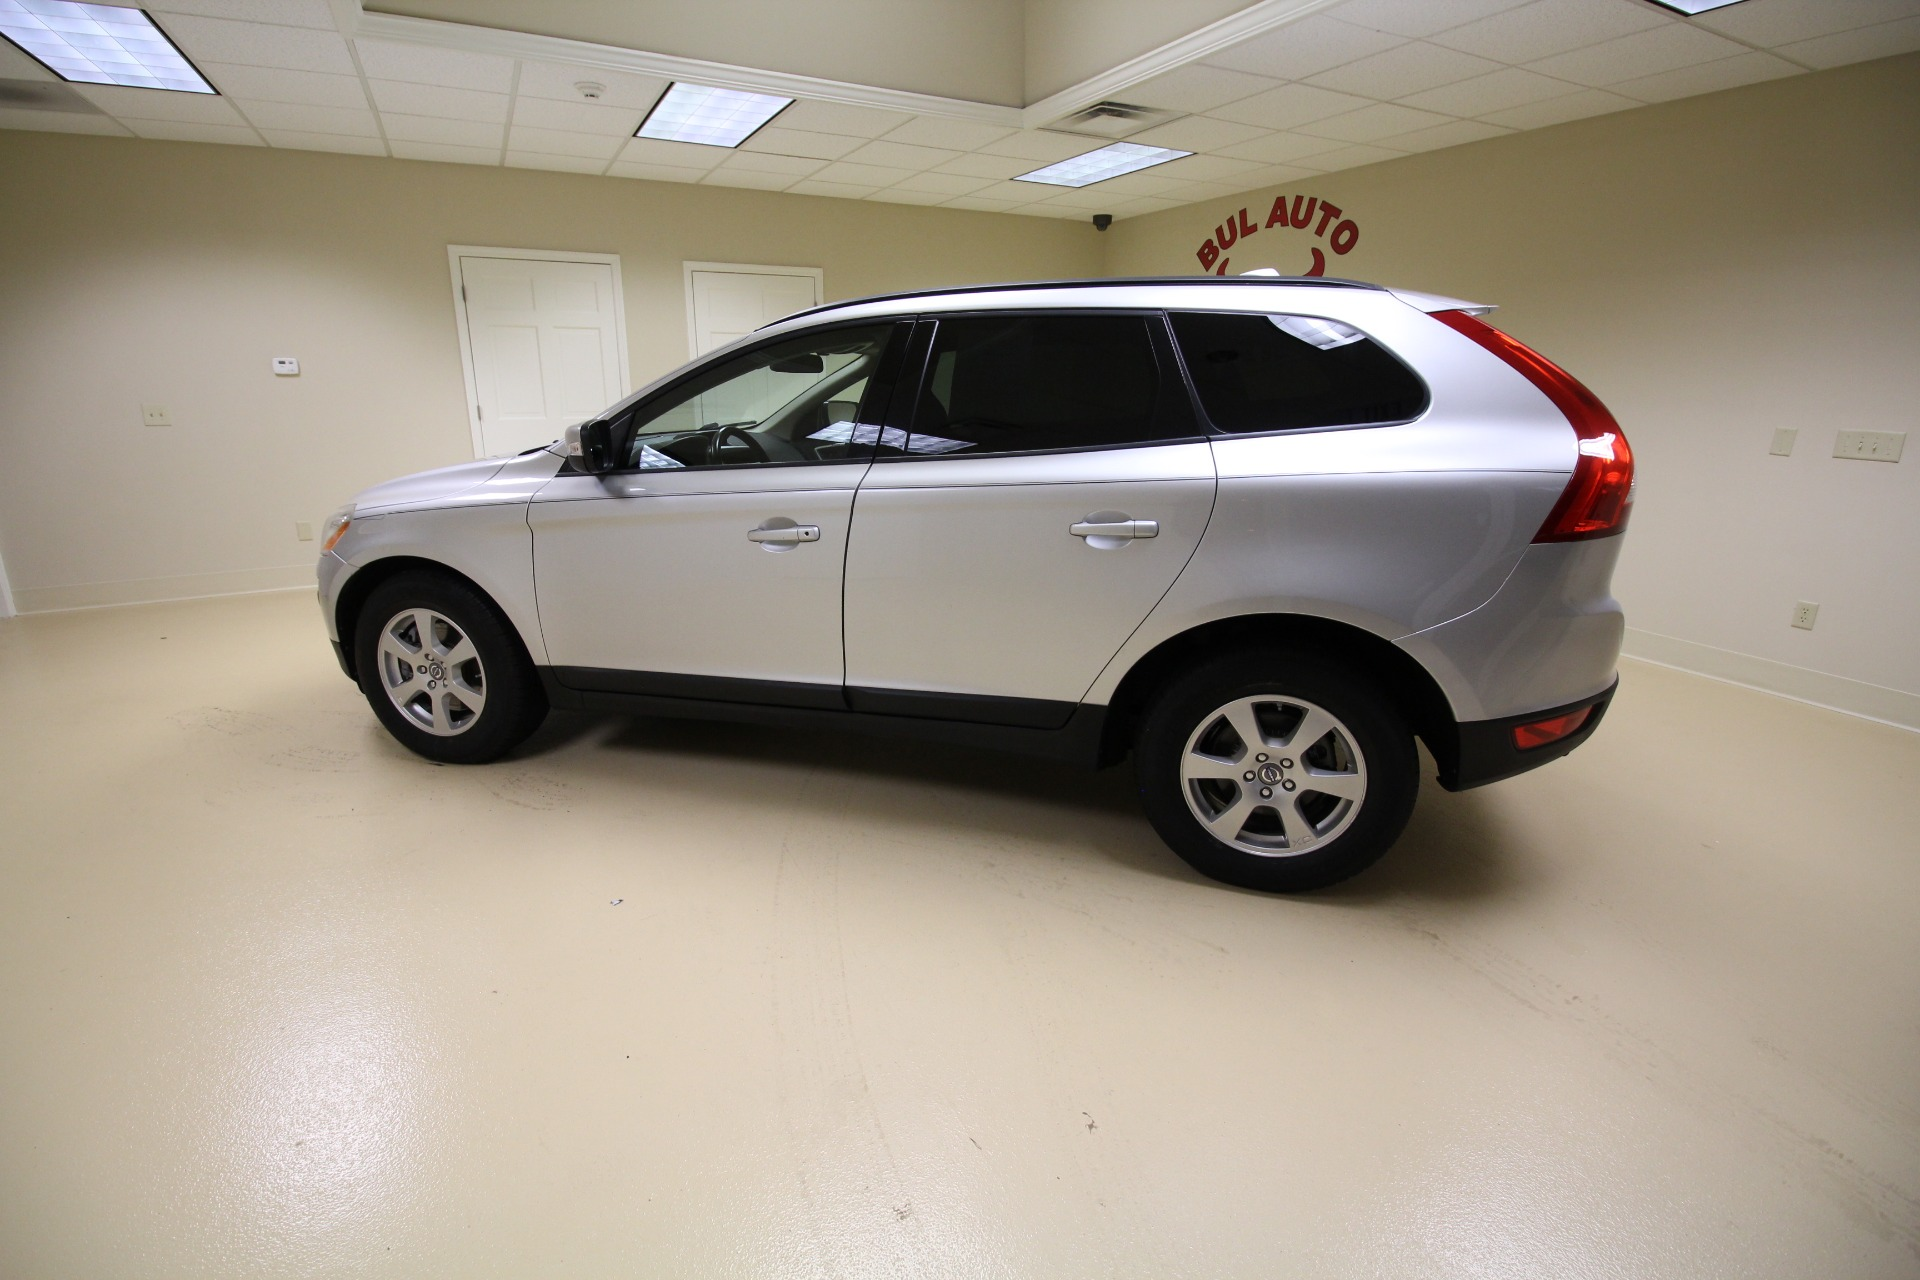 2010 Volvo XC60 T6 AWD Stock # 18219 for sale near Albany, NY | NY Volvo Dealer For Sale in ...